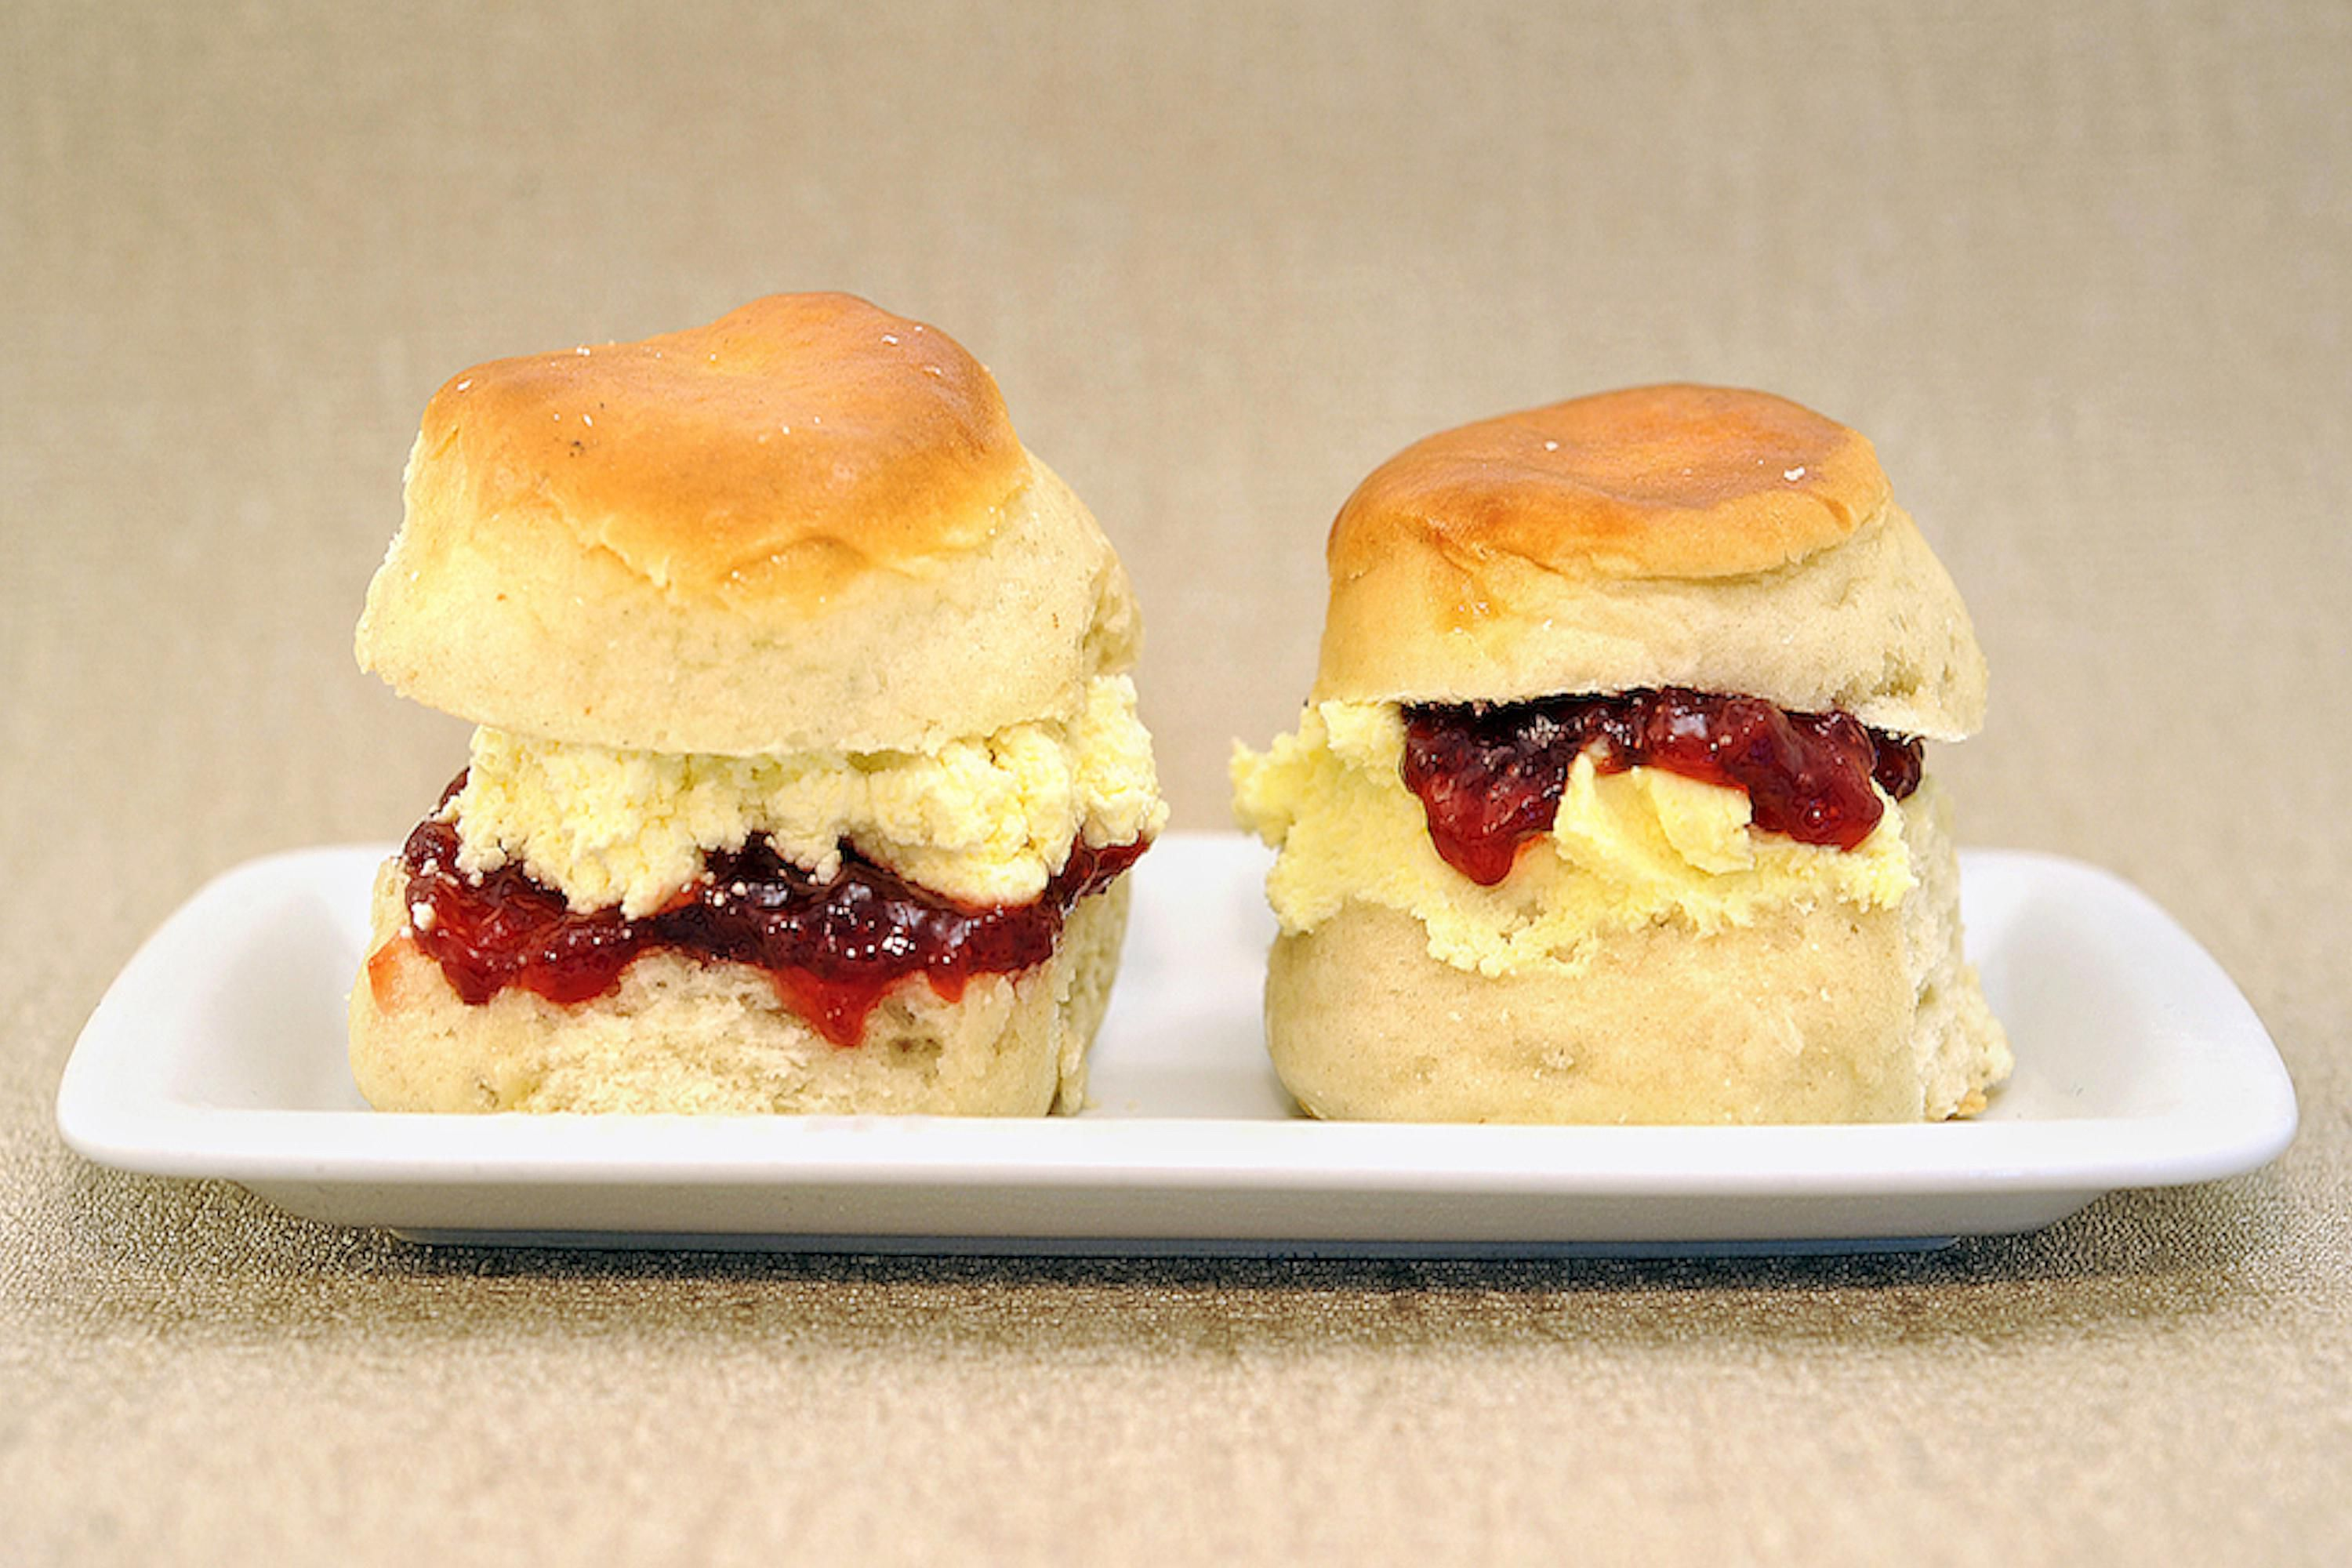 What Is English Clotted Cream